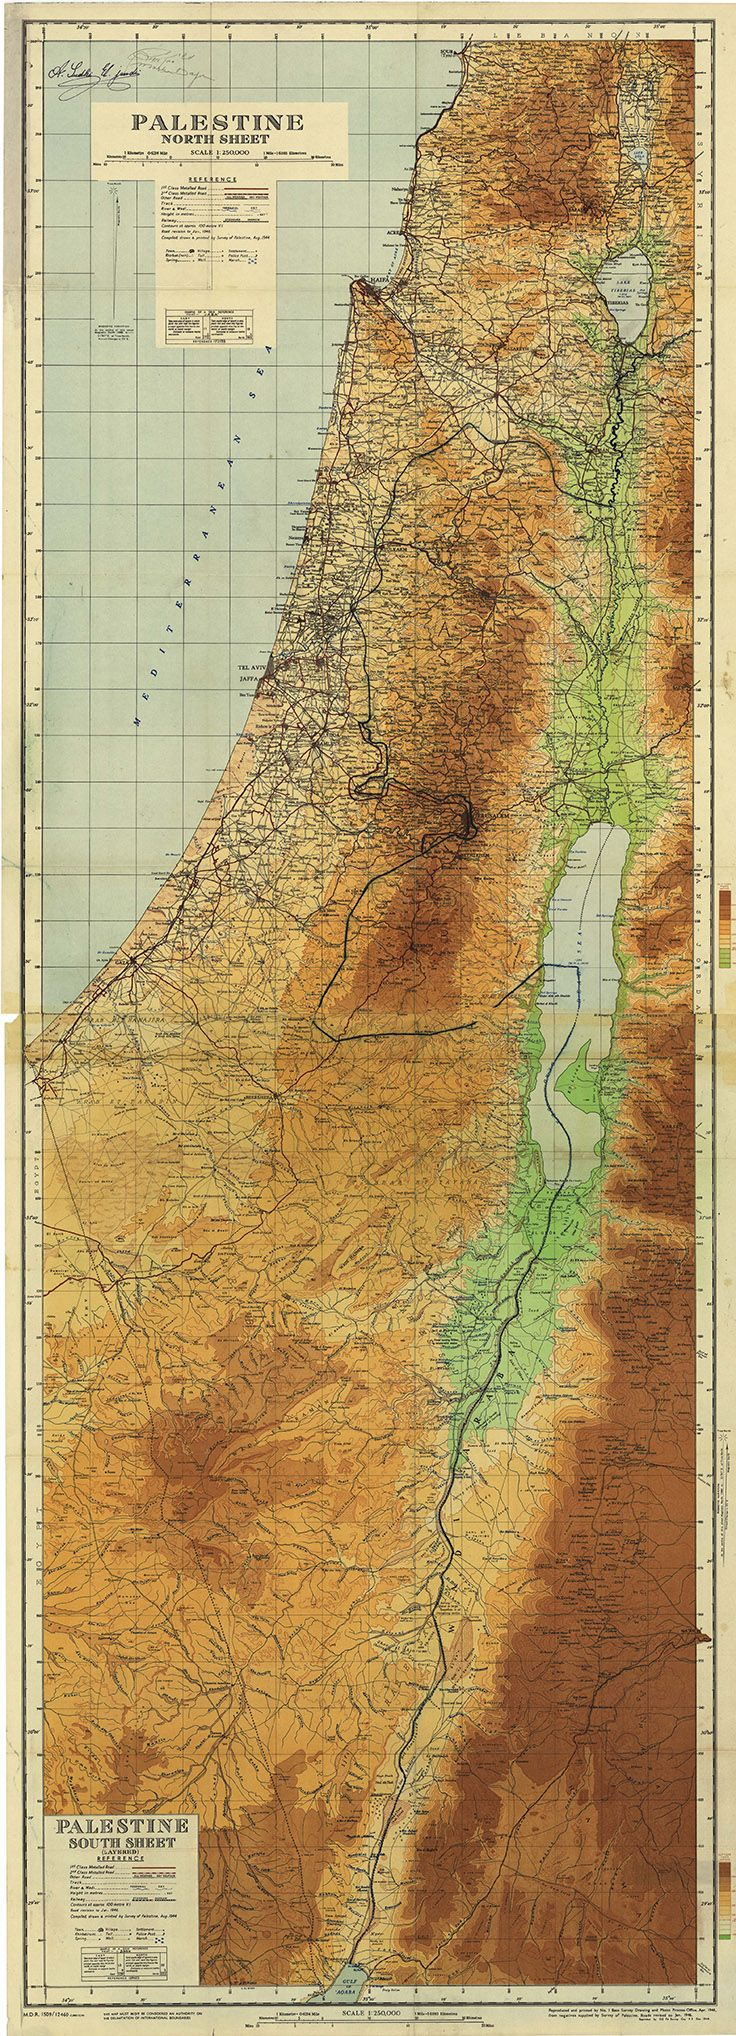 """Palestine 1946 map: Palestine before Israeli 1948 Al Nabka confiscation of land - very rare map gem (despite upper L corner signature by Moshe Dayan!) • 4.4MB 250dpi 87x32cm 34.5x12.5"""" 8630x3120px (link since Pinterest allows max 736px w) • ©1946-04 Base Survey Drawing & Photo Process Office • map: http://www.palestineremembered.com/Acre/Maps/Story582.html • Moshe (1915-1981 born from Ukrainian immigrants; Israeli Min. of Def. 1967-74 incl. 6-Day War)…"""